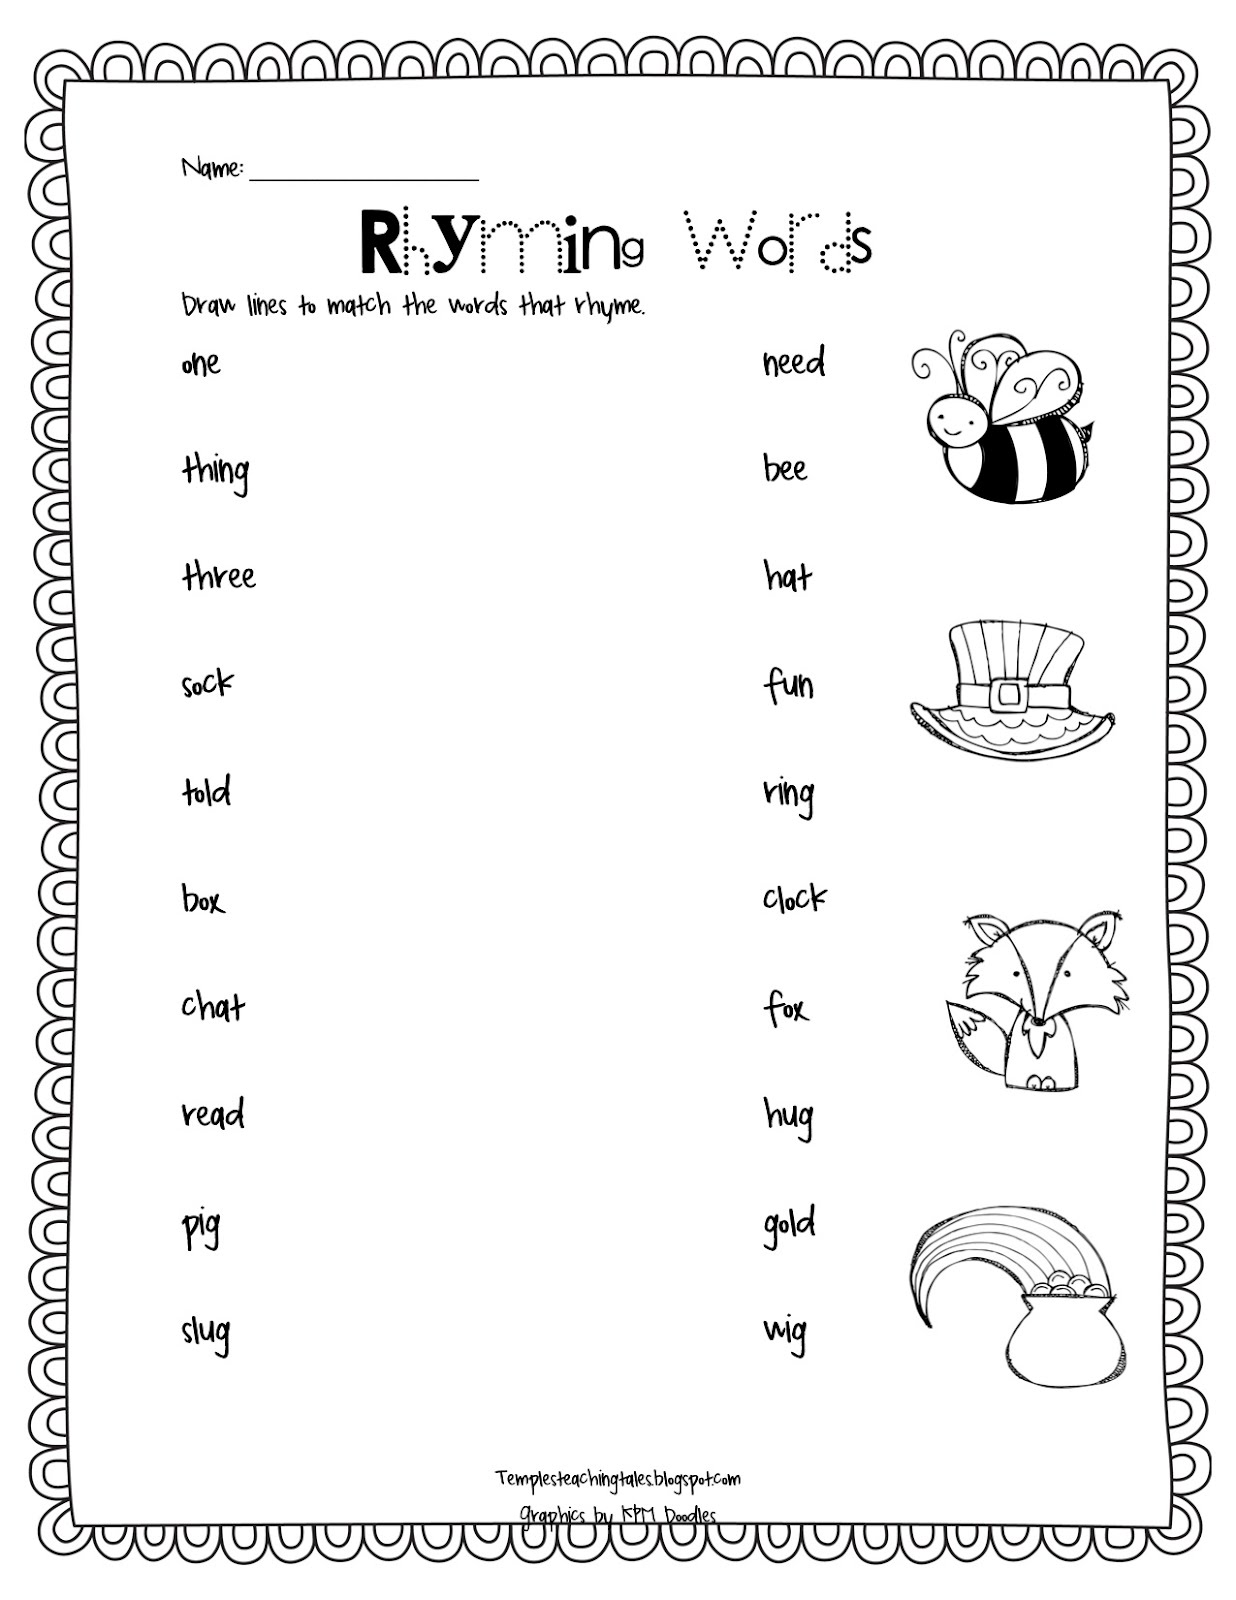 Worksheet Rhyming Word Worksheets For Kindergarten printables rhyming words worksheets for kindergarten worksheet fireyourmentor free printable word rhyme worksheets